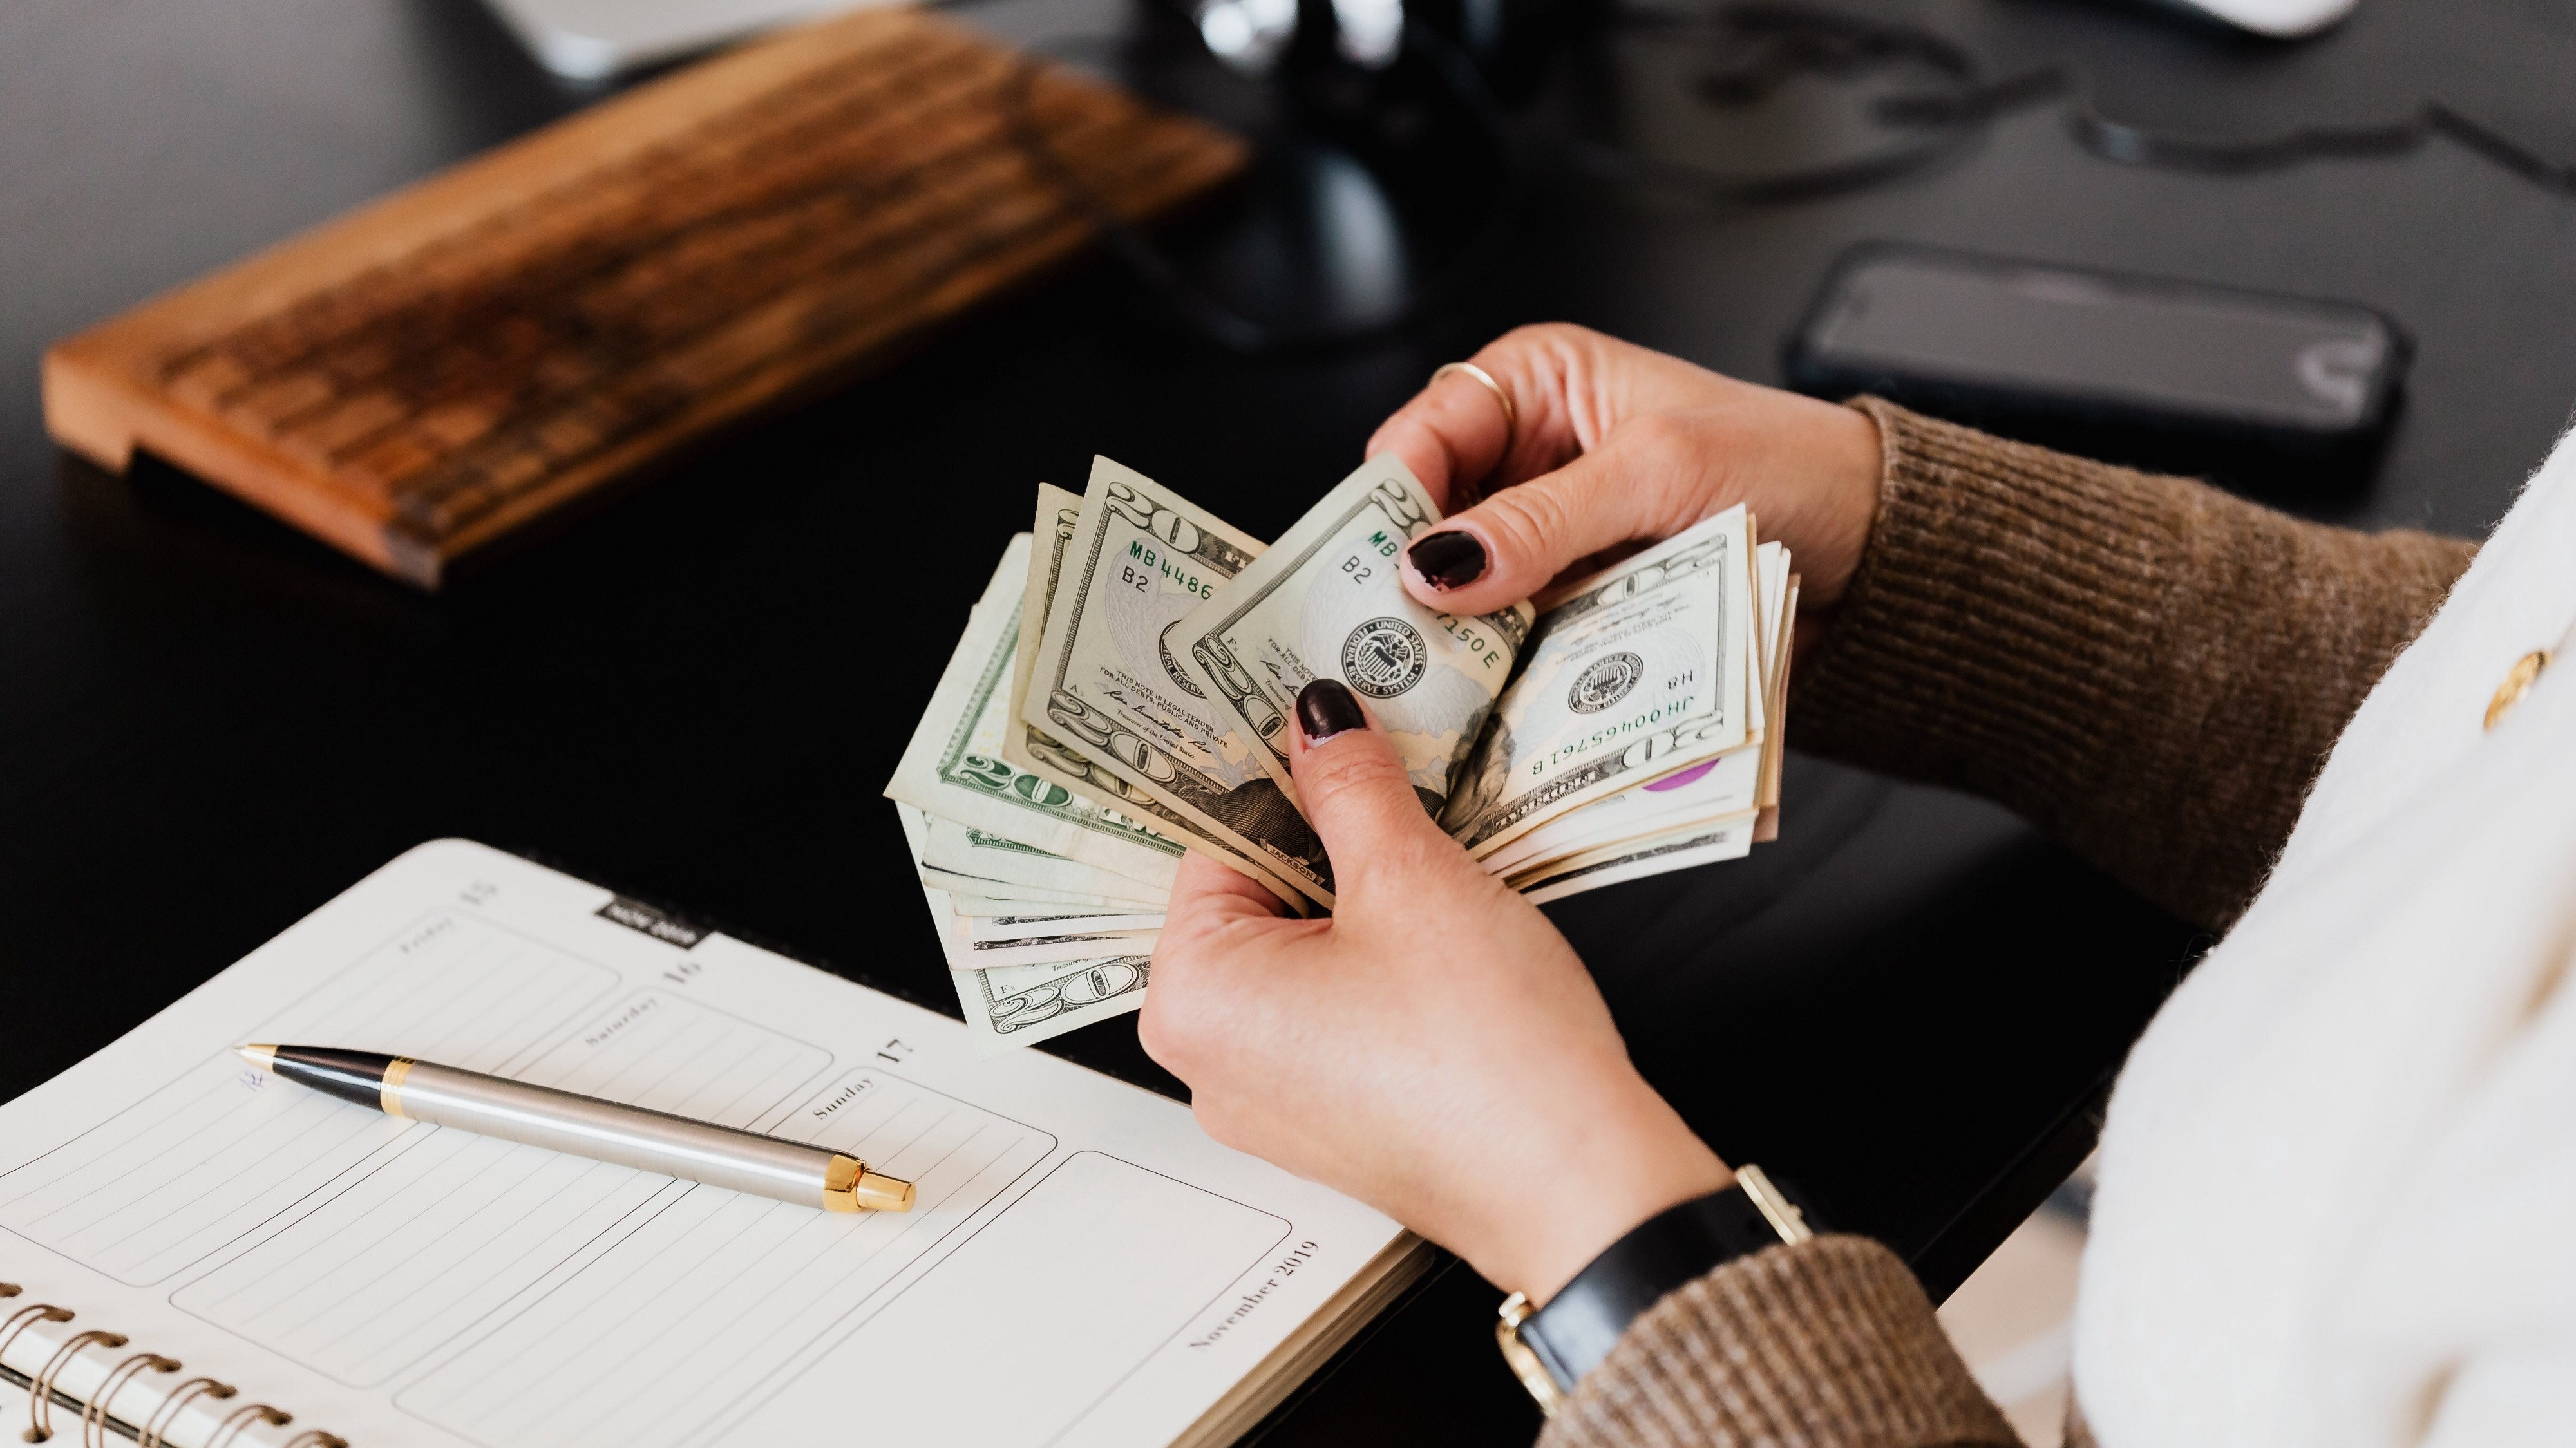 Womans hands holding a stack of $20 bills. A pen rests on top of a notebook on the desk in front of here.